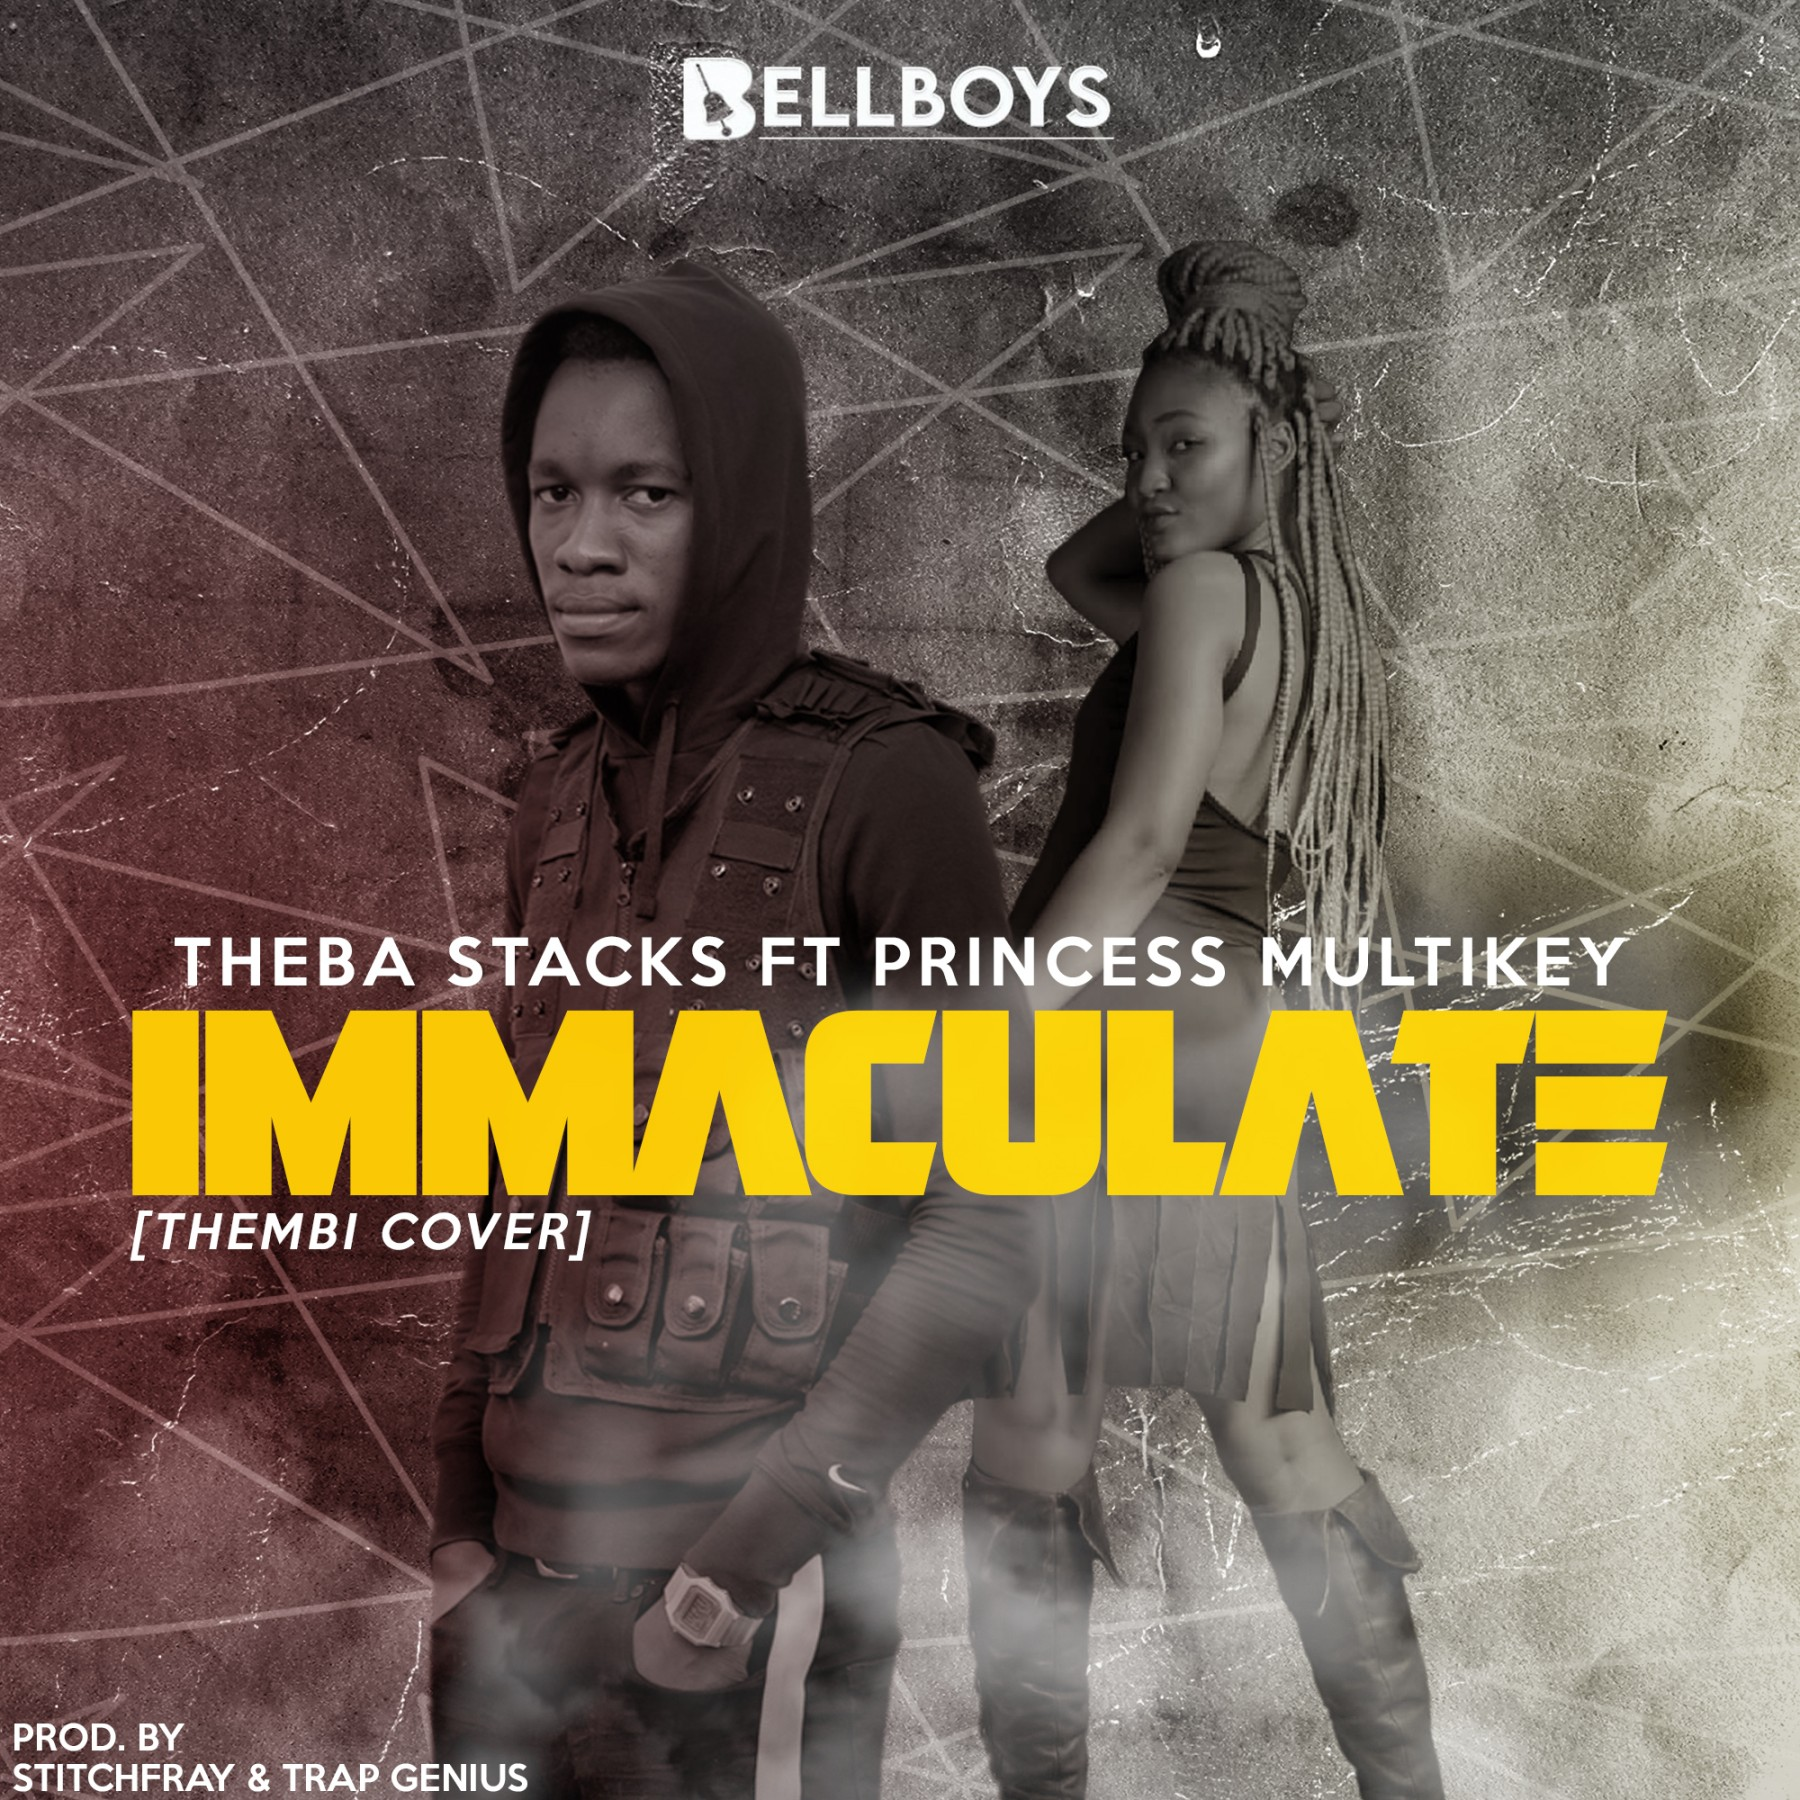 Theba-Stacks-Immaculate-Ft-Princess-Multikey-Thembi-Cover-Prod-by-Stichfrey-Trap-Genius